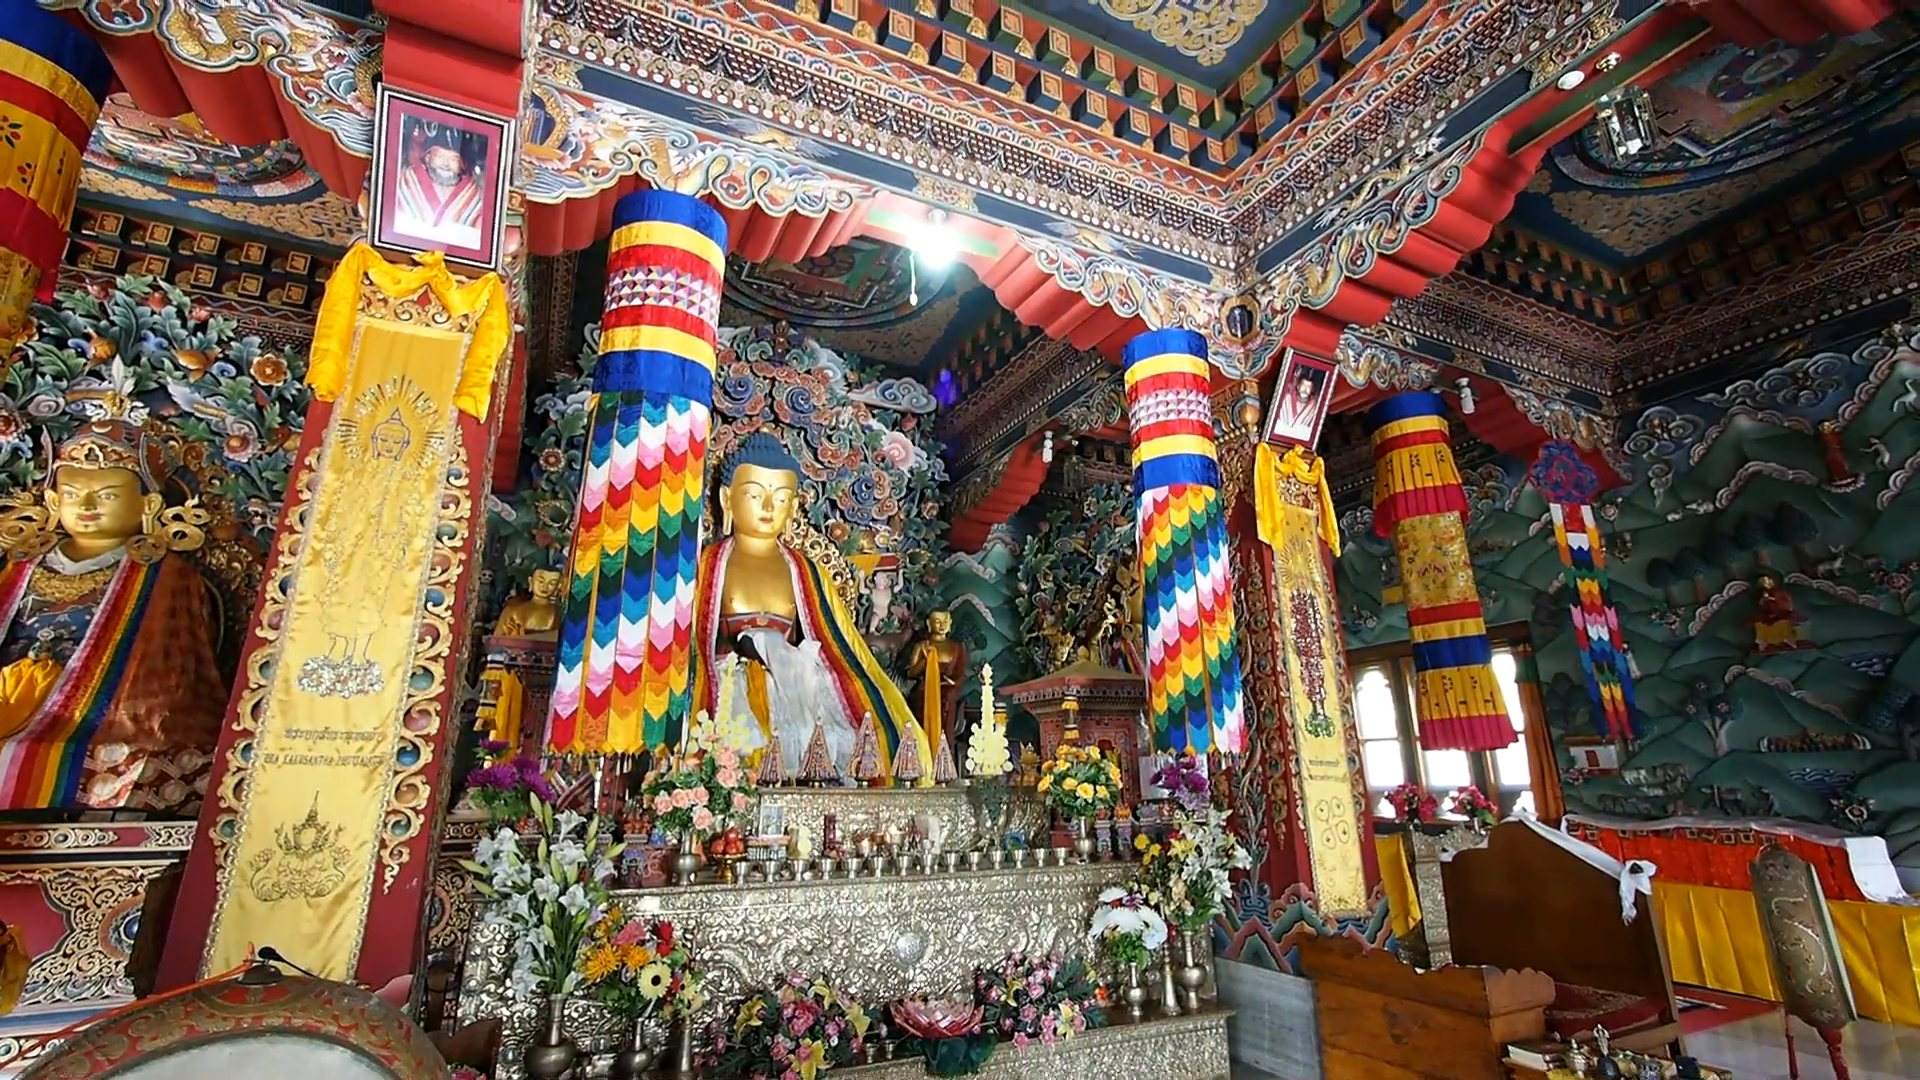 Bhutanese Monastery Bodhgaya, Inside the Royal Bhutan Monastery in Bodhgaya, Bihar, India Stock ...